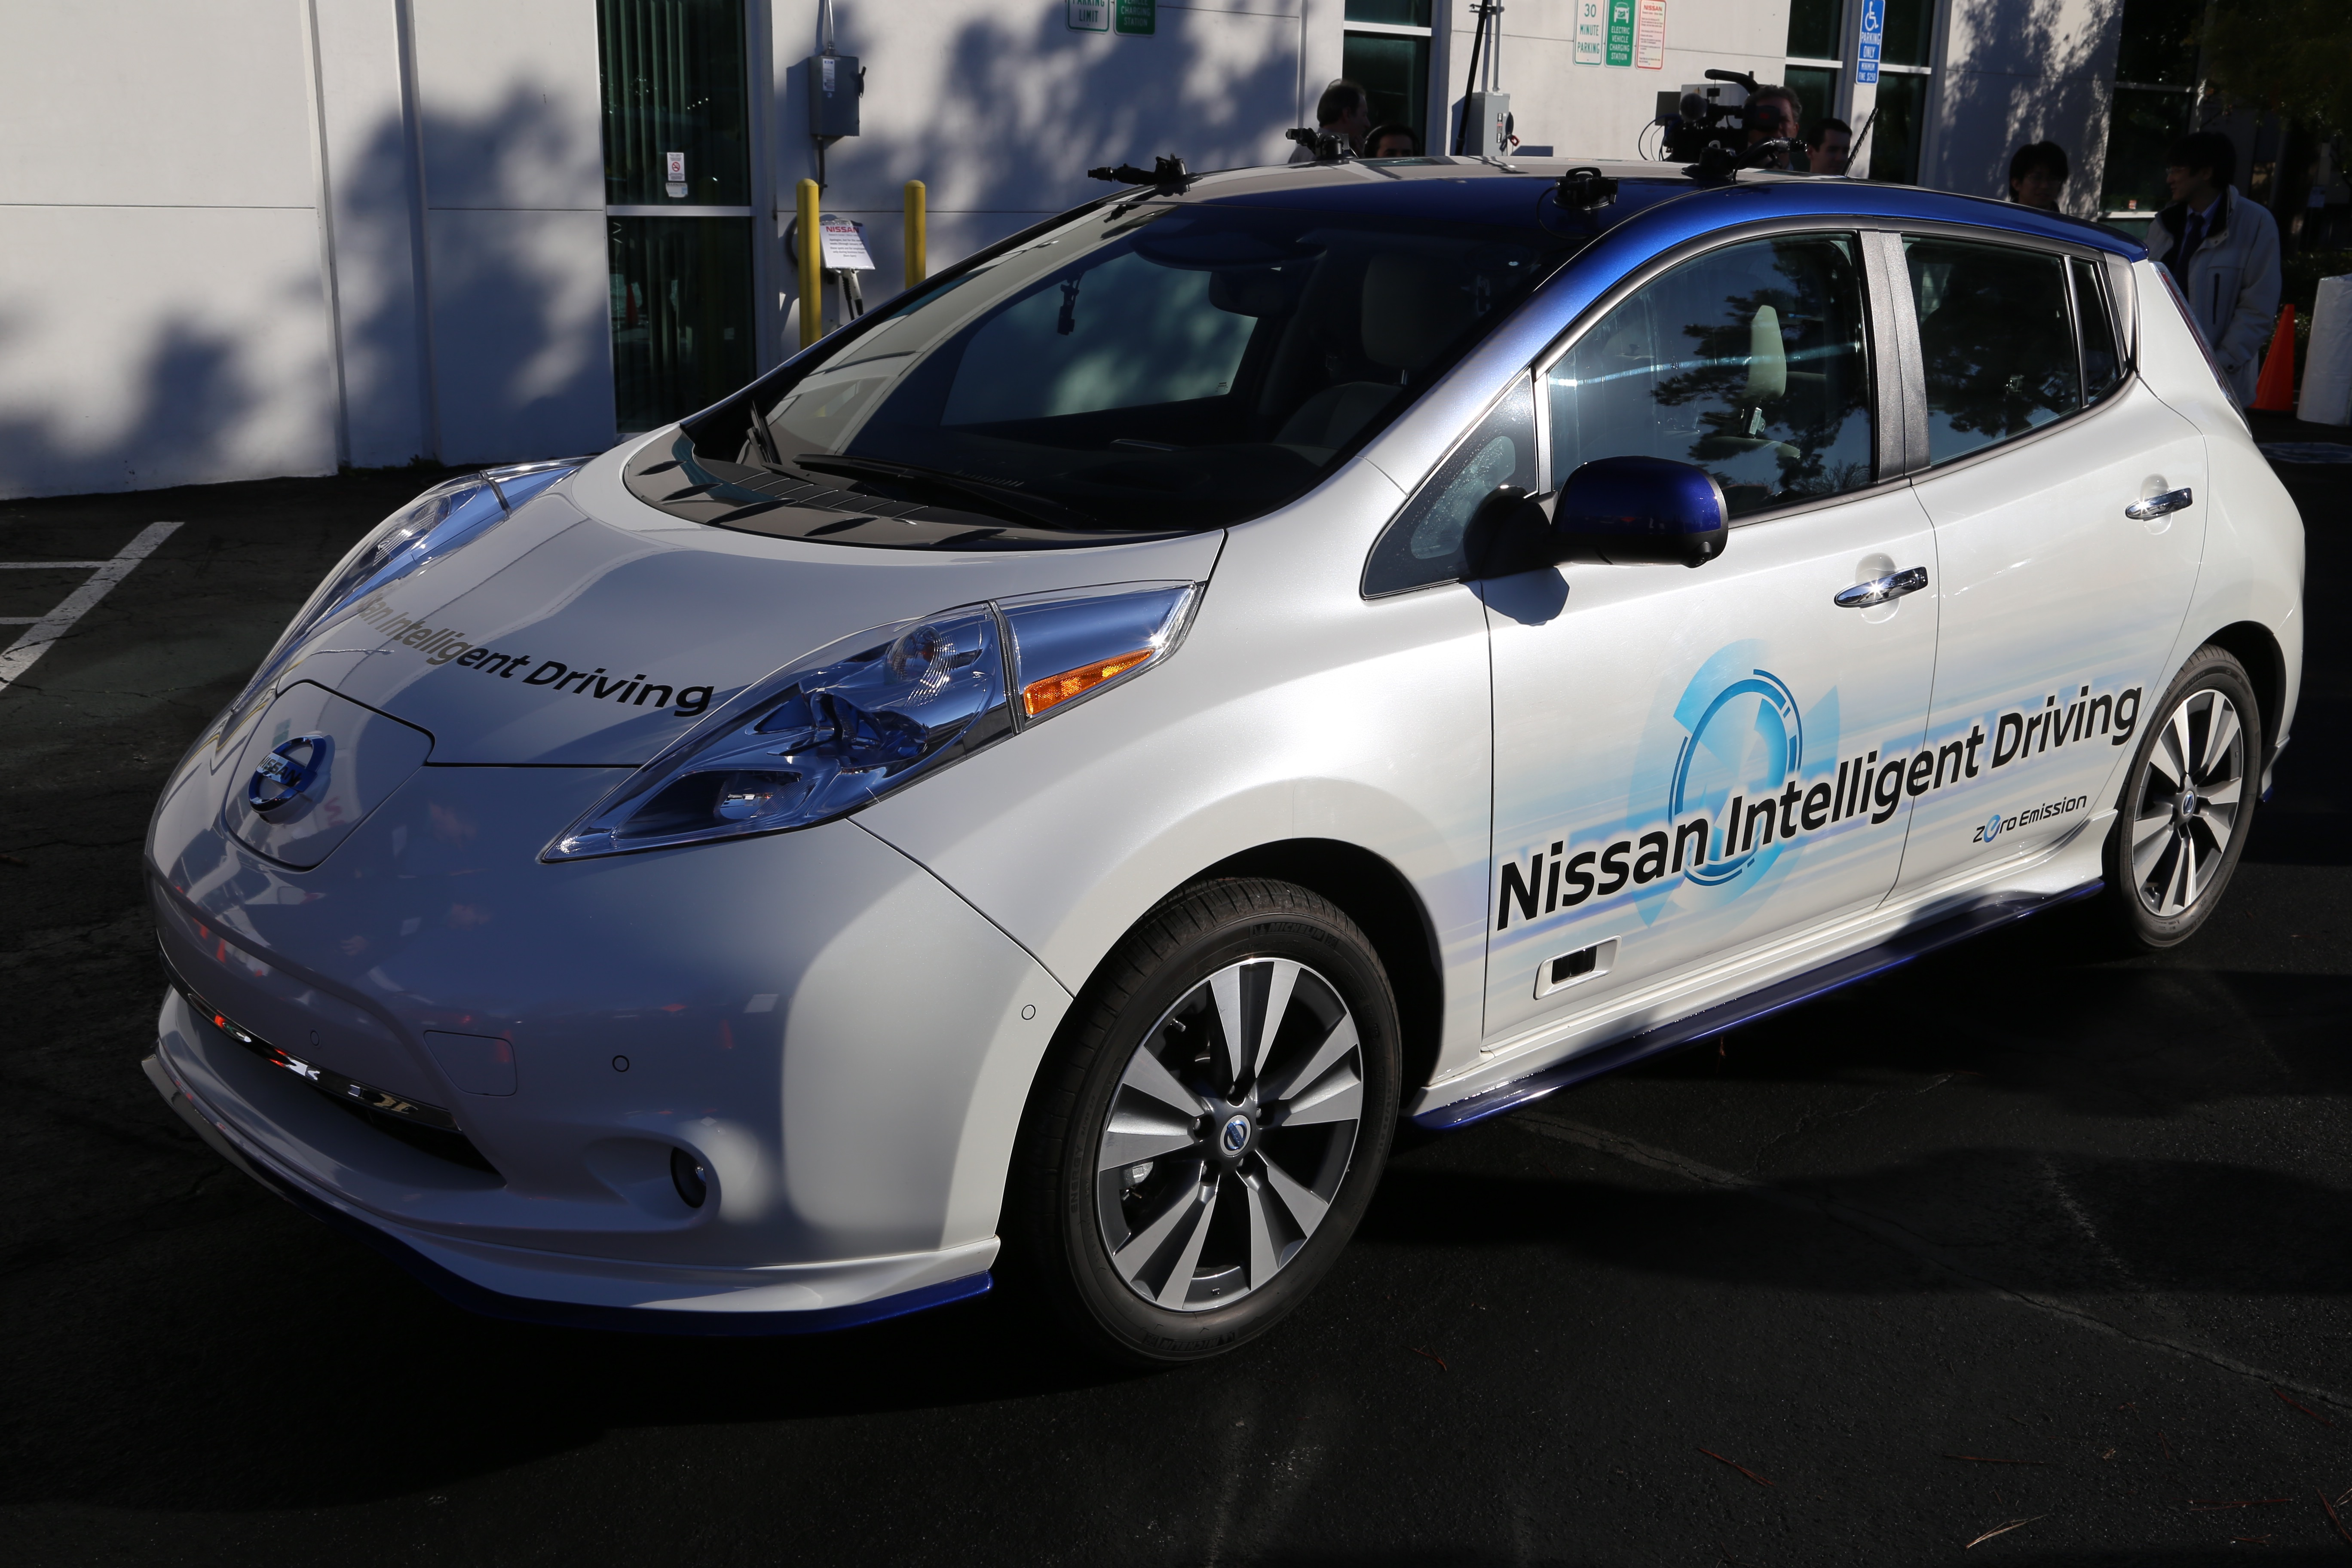 The self-driving Nissan LEAF, outside of Nissan's Silicon Valley Research Center in Sunnyvale, Calif.